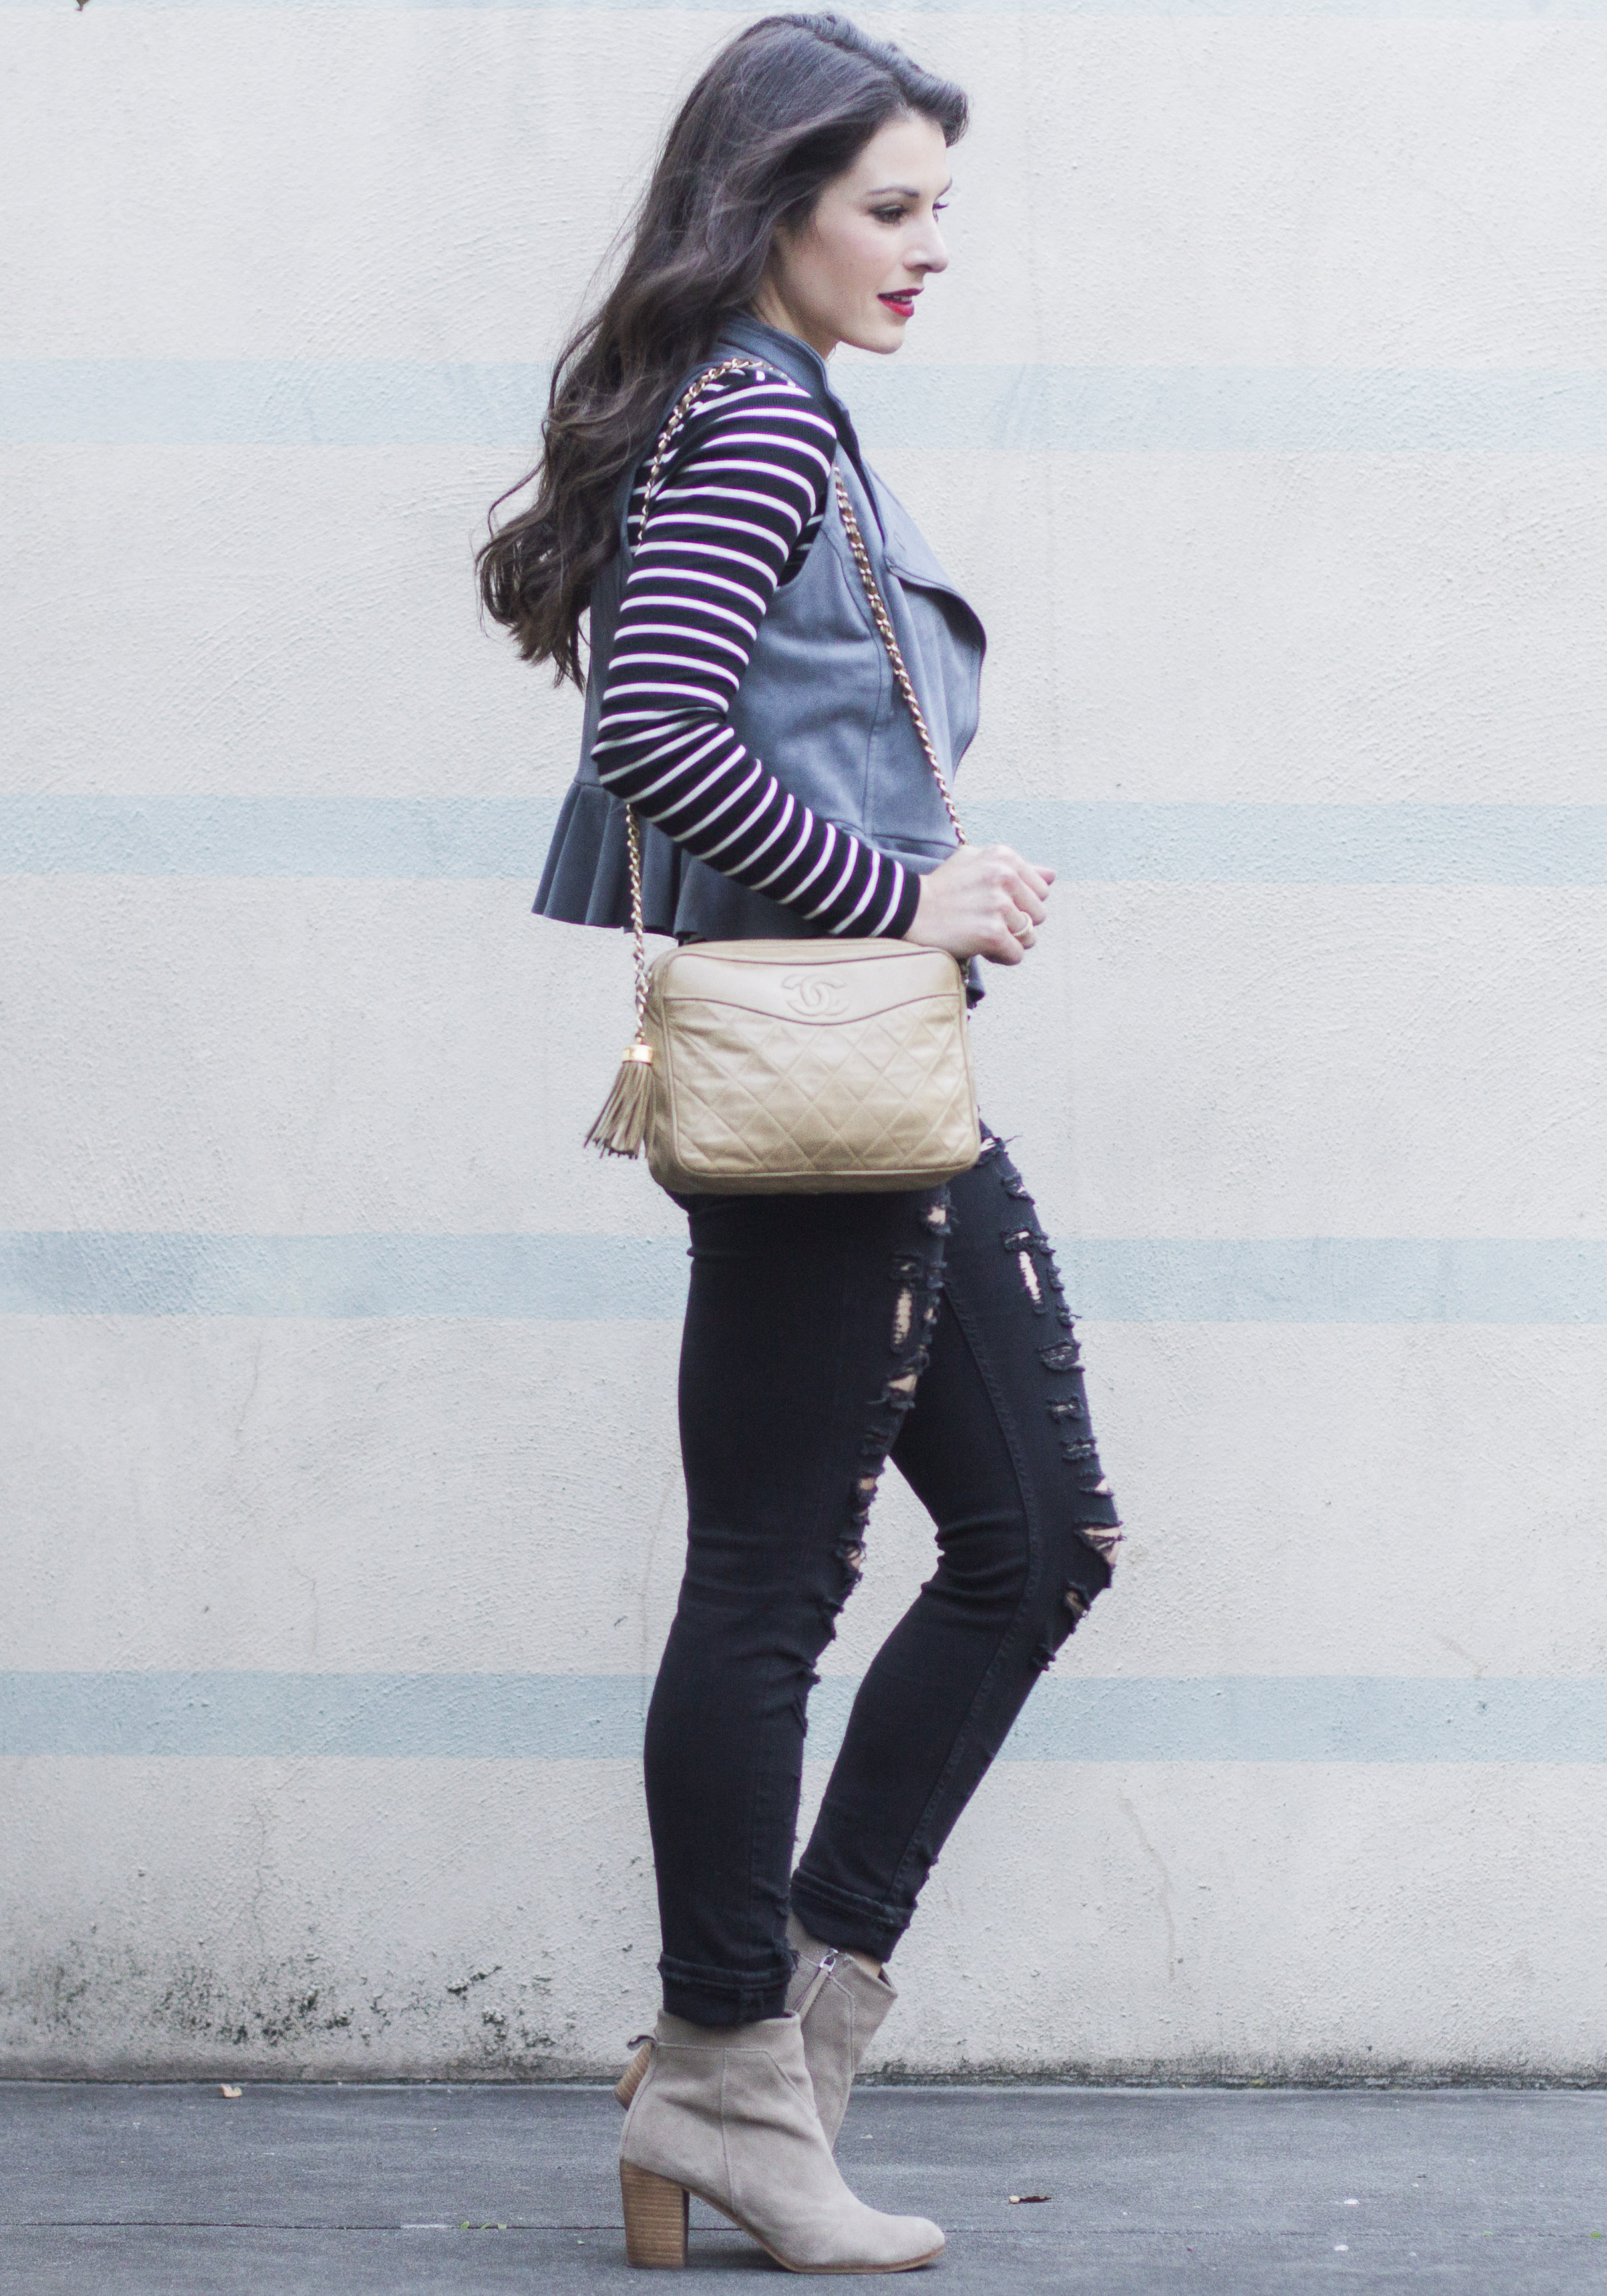 Mixing edgy and feminine pieces to create cute fall outfits: LC Lauren Conrad ruffle peplum vest, Blank NYC ripped skinny jeans, Long sleeve lace up top, Toms Lunata booties, and vintage Chanel handbag.